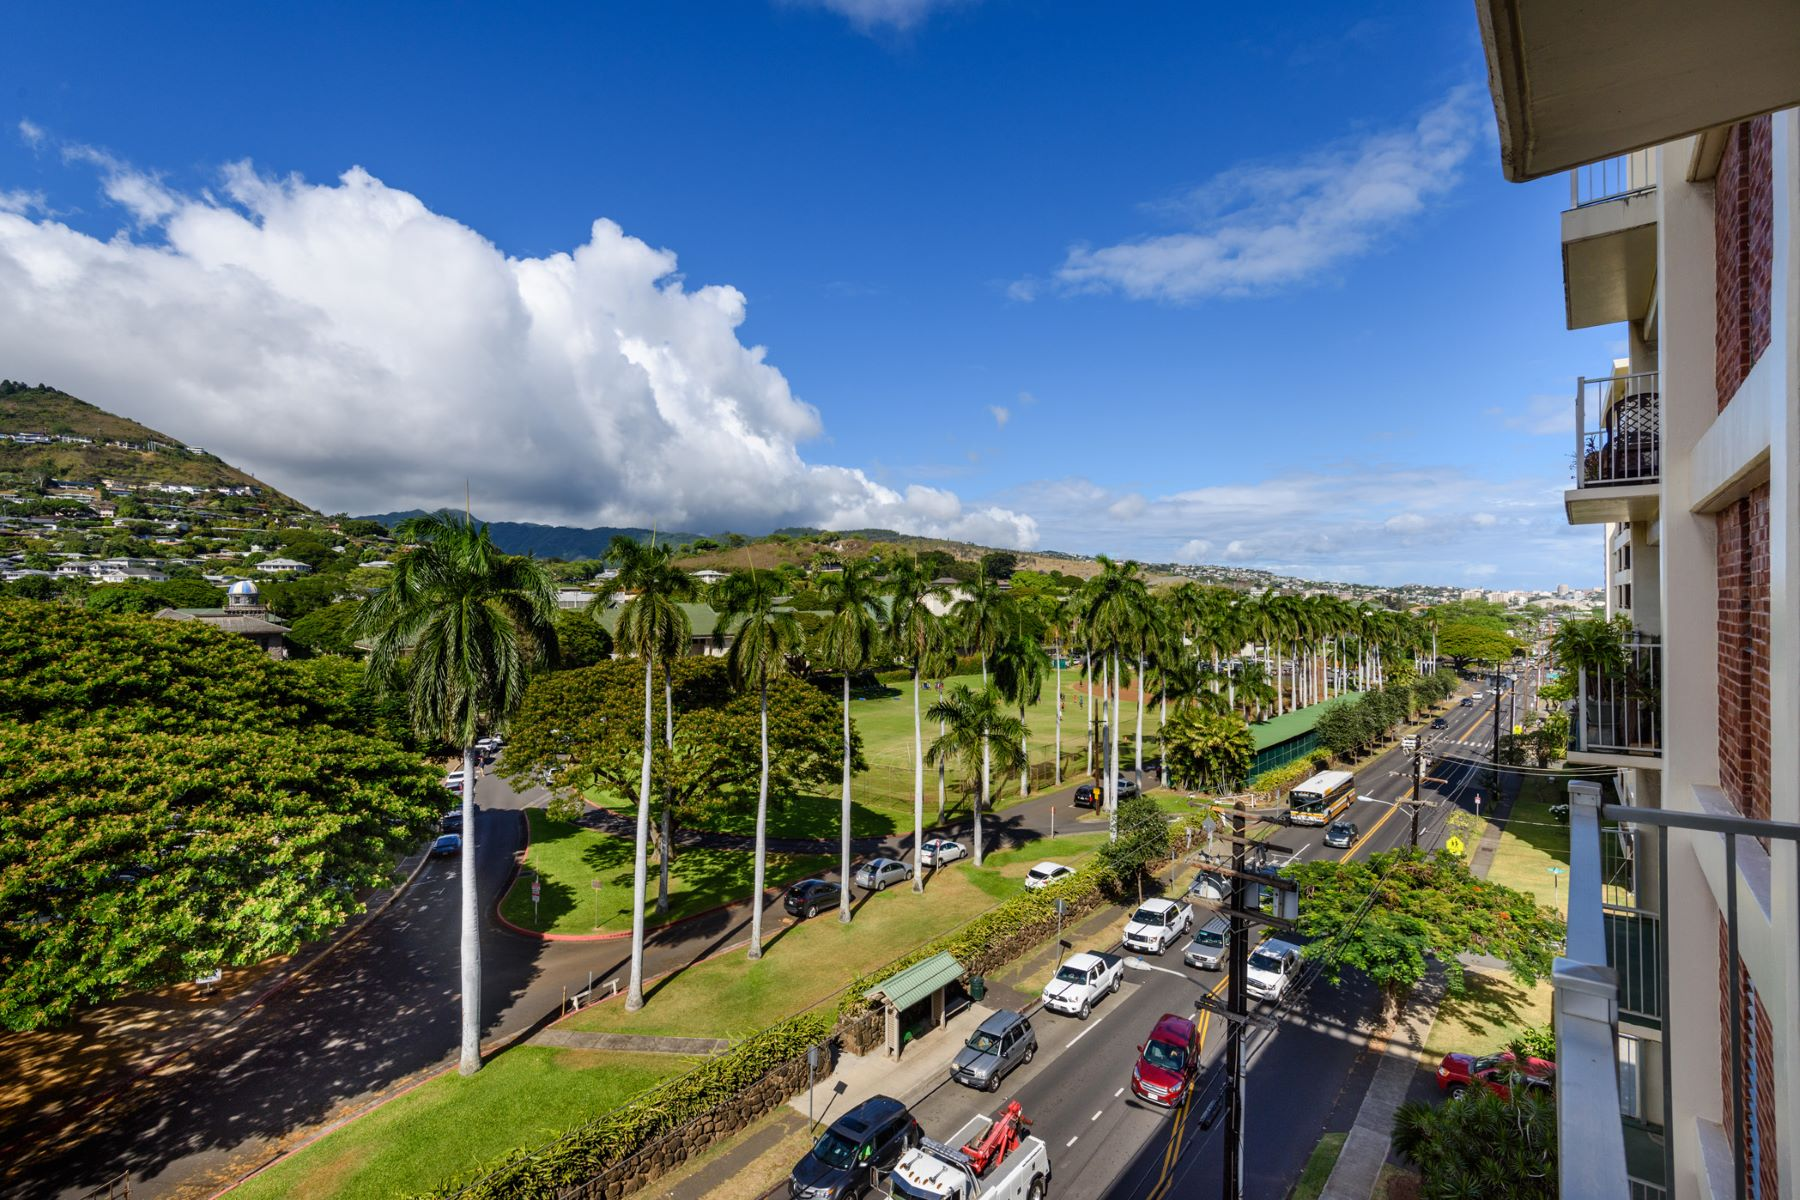 Condominium for Sale at Tropical Island Home 1535 Punahou Street #703 Honolulu, Hawaii 96822 United States